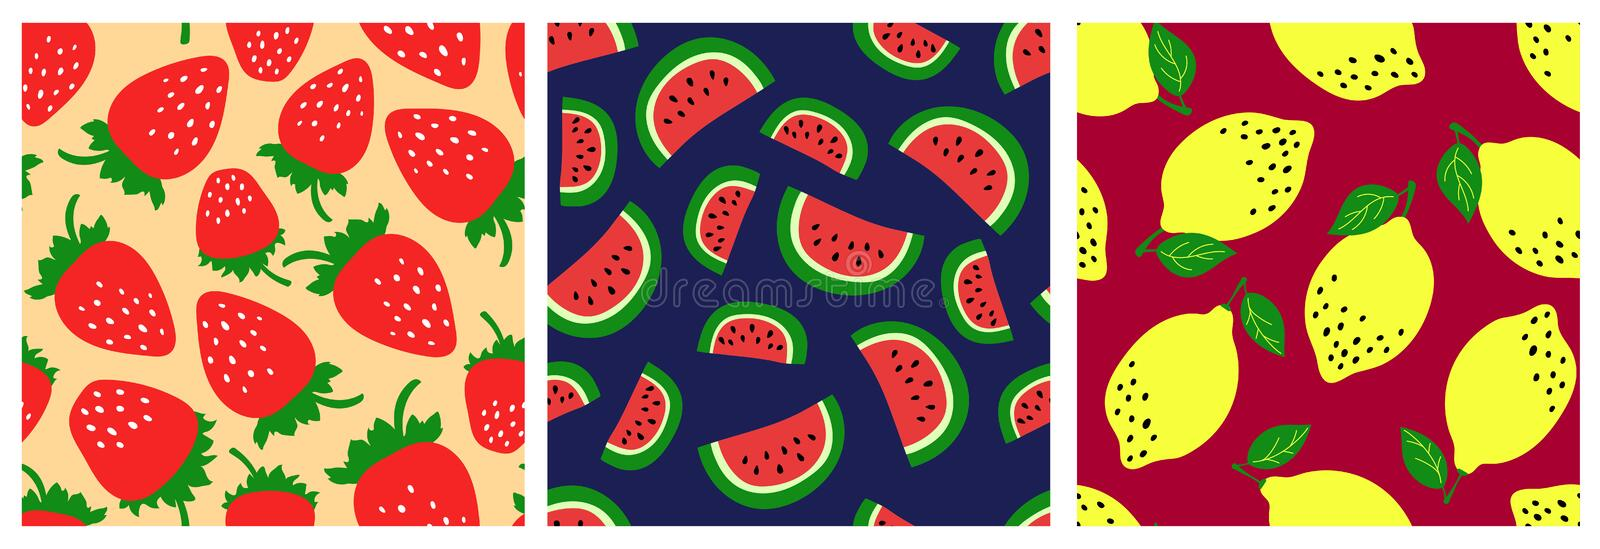 Watermelon, strawberry, lemon. Fruit seamless pattern set. Fashion clothing design. Food print for dress, skirt, linens or curtain vector illustration